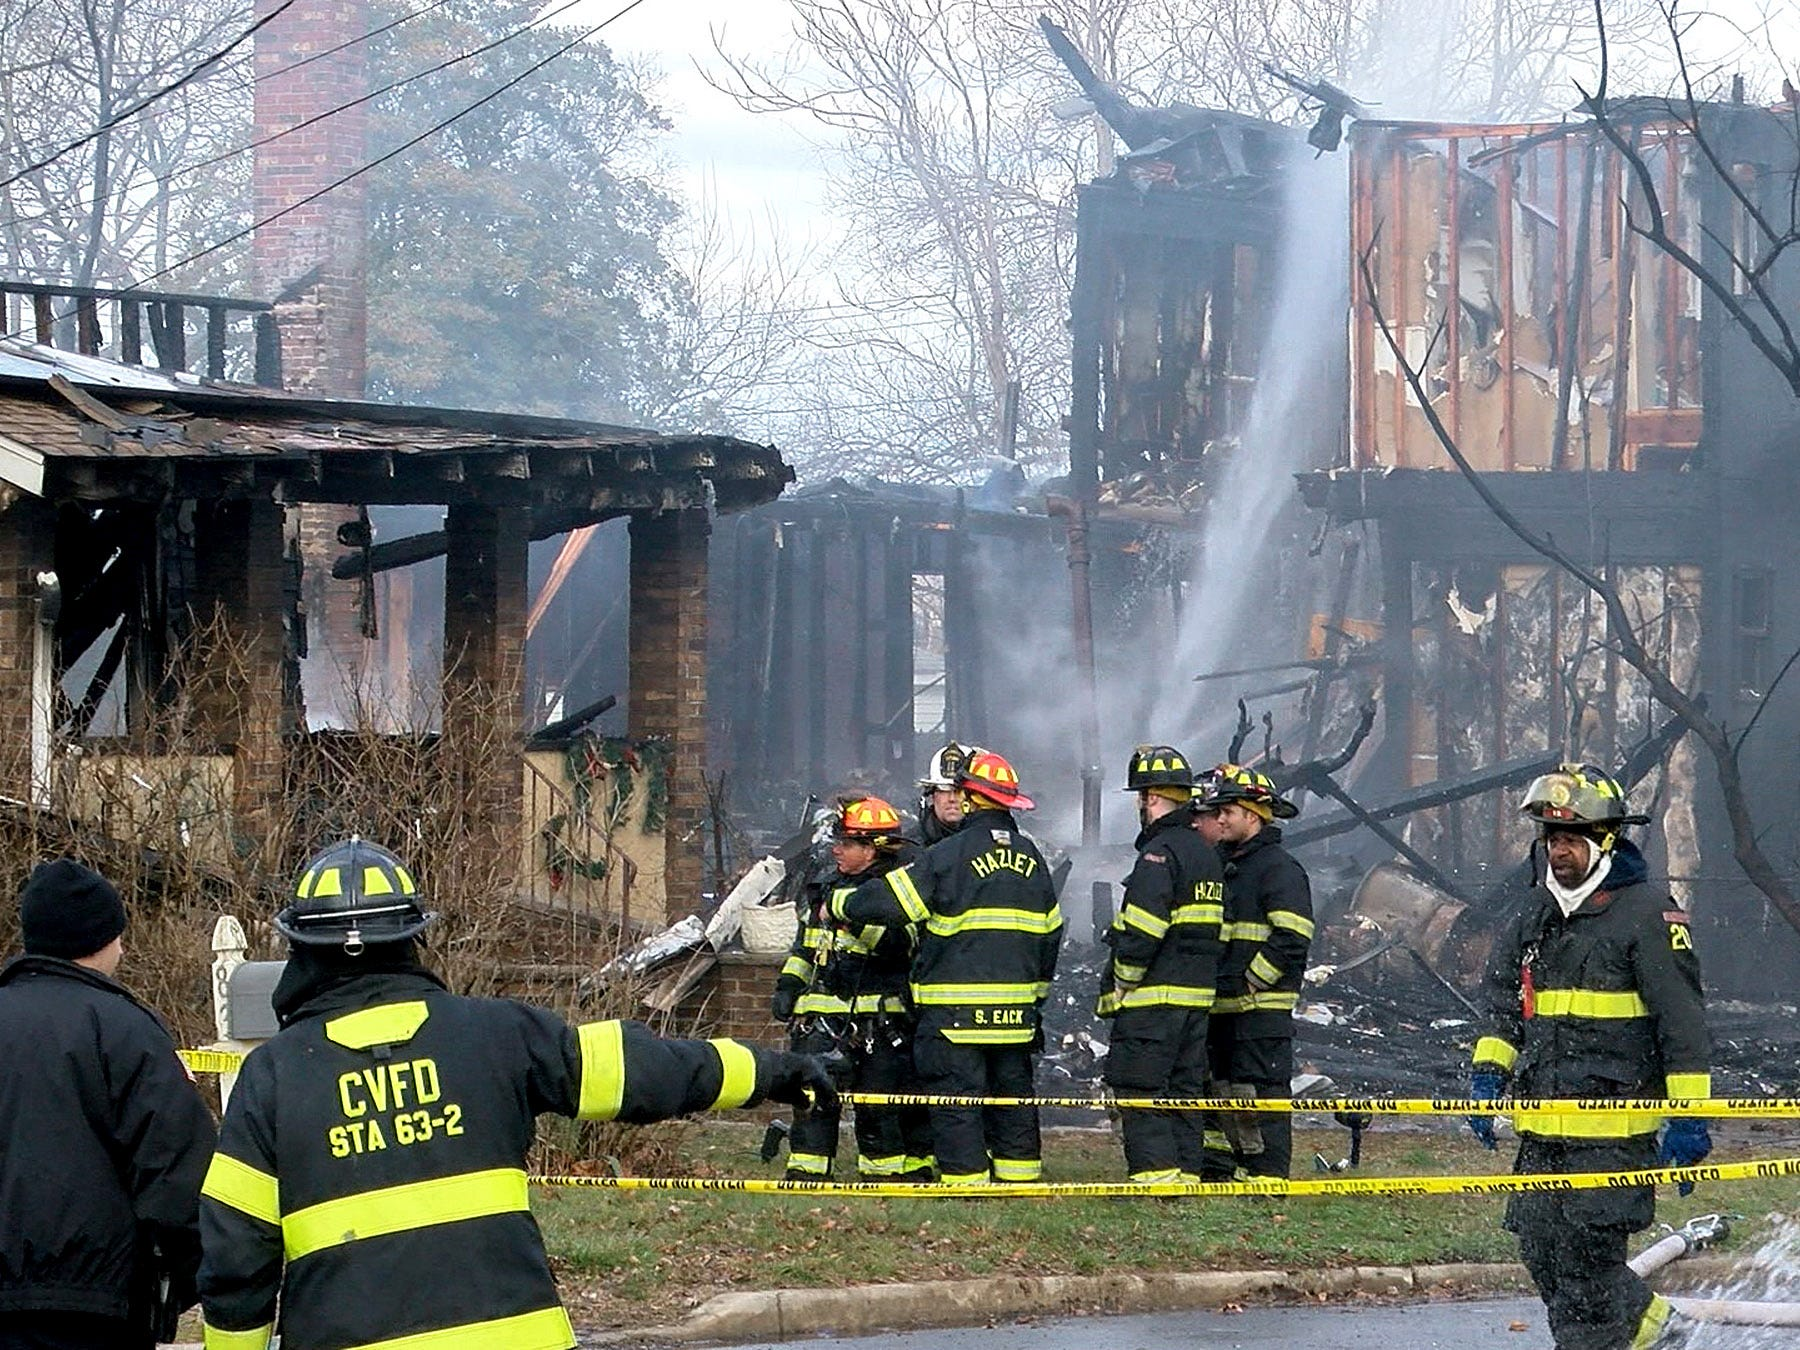 Three homes along Highfield Avenue in Aberdeen were destroyed by a fire Thursday morning, January 10, 2019.  Officials reported that no one was injured in the blaze.